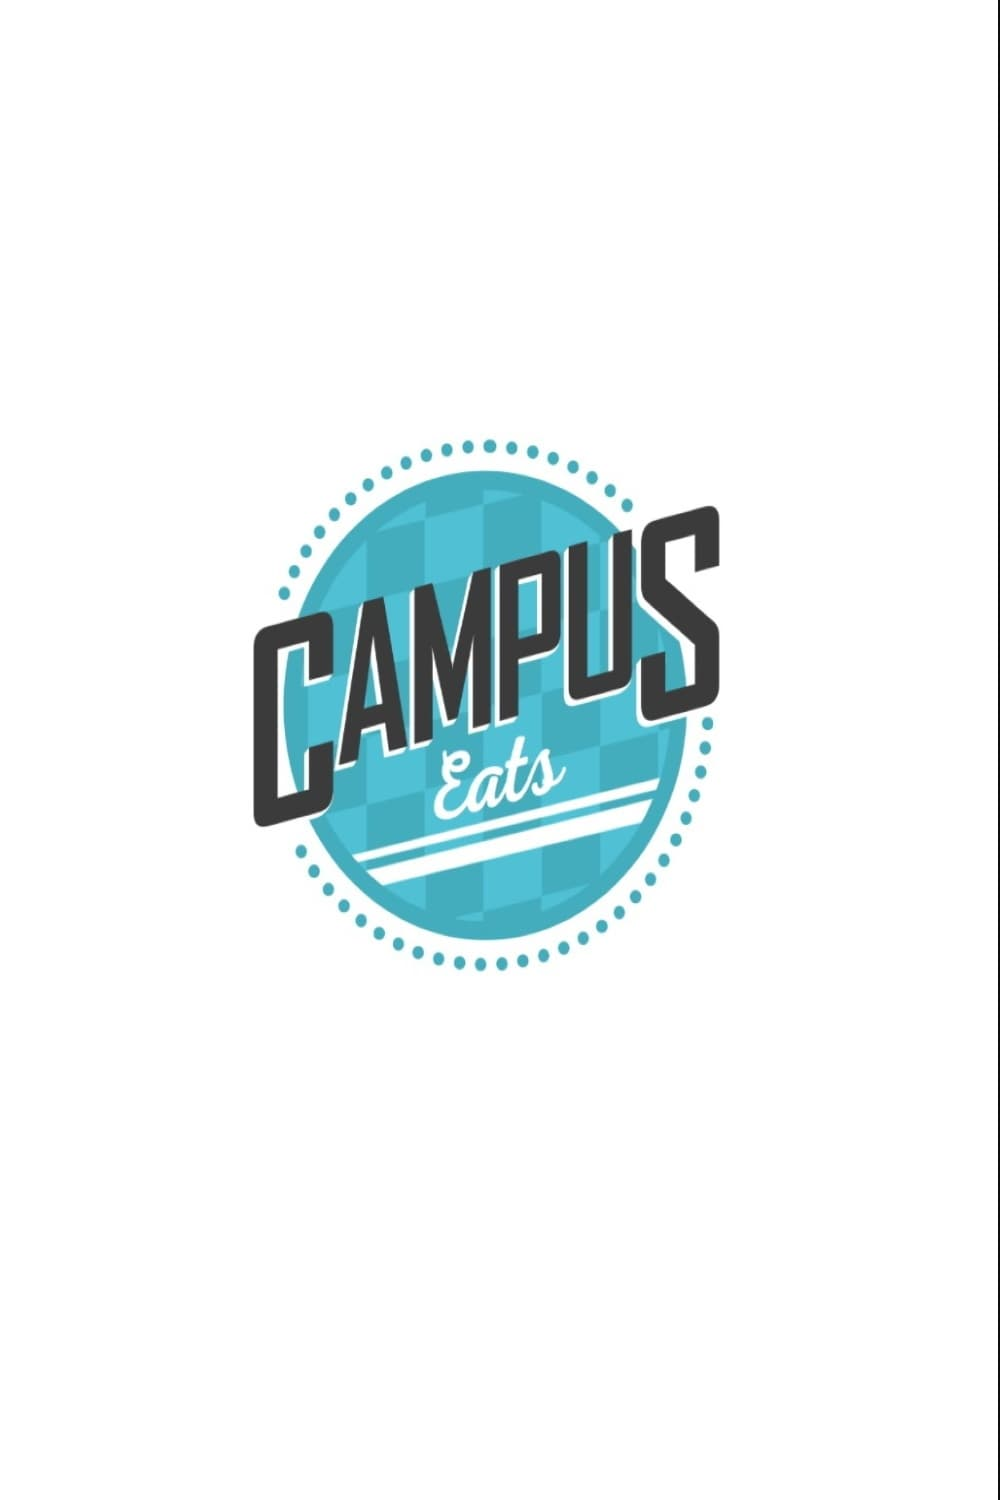 Campus Eats TV Shows About American Football